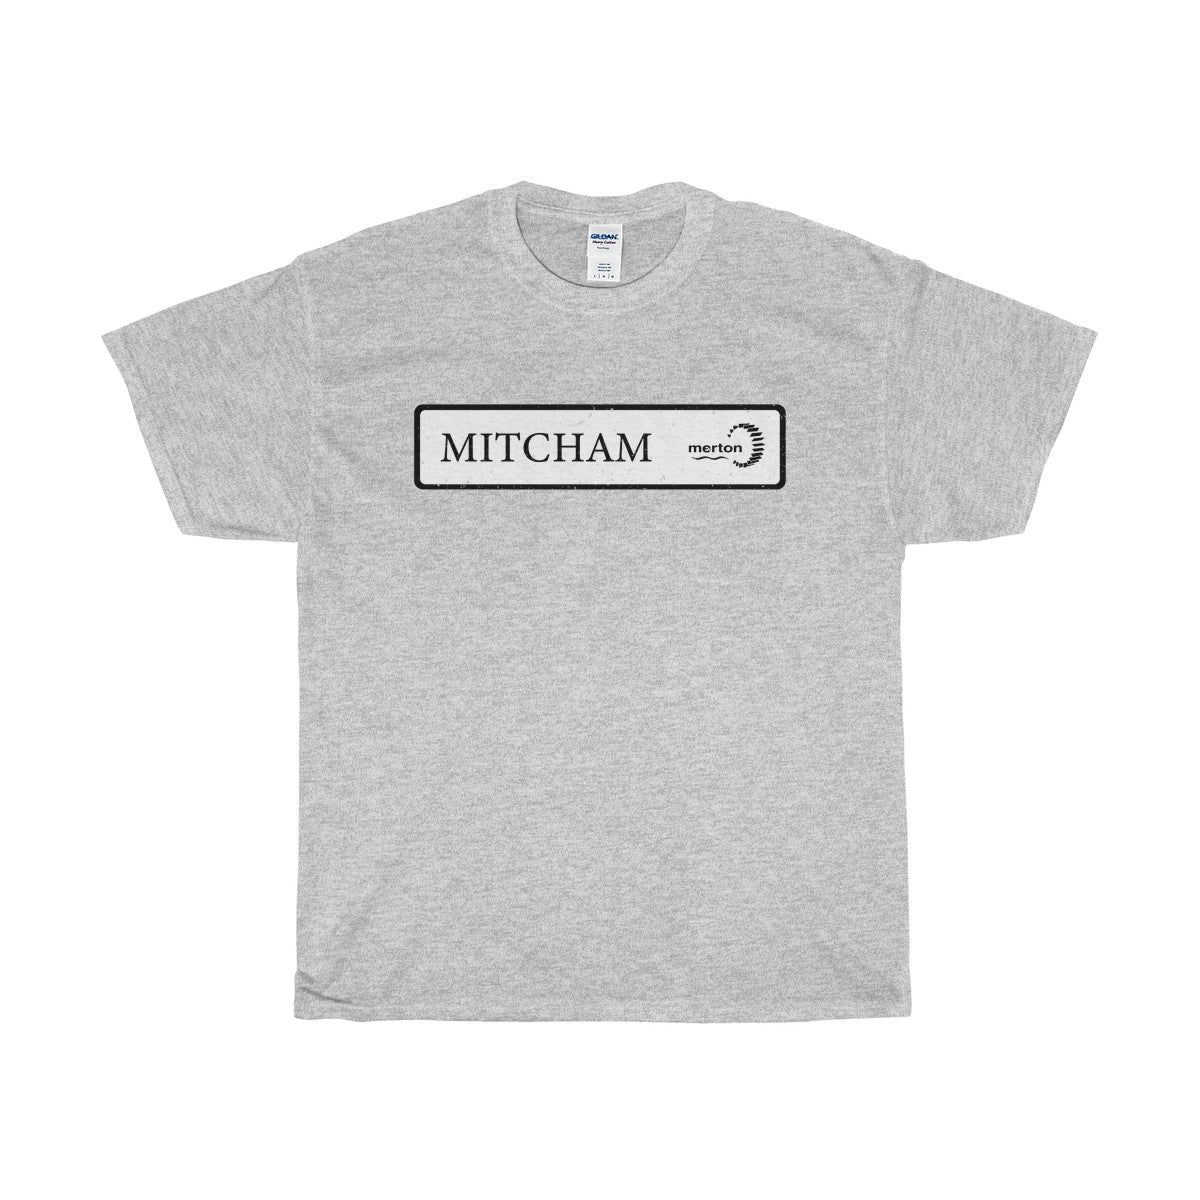 Mitcham Road Sign T-Shirt